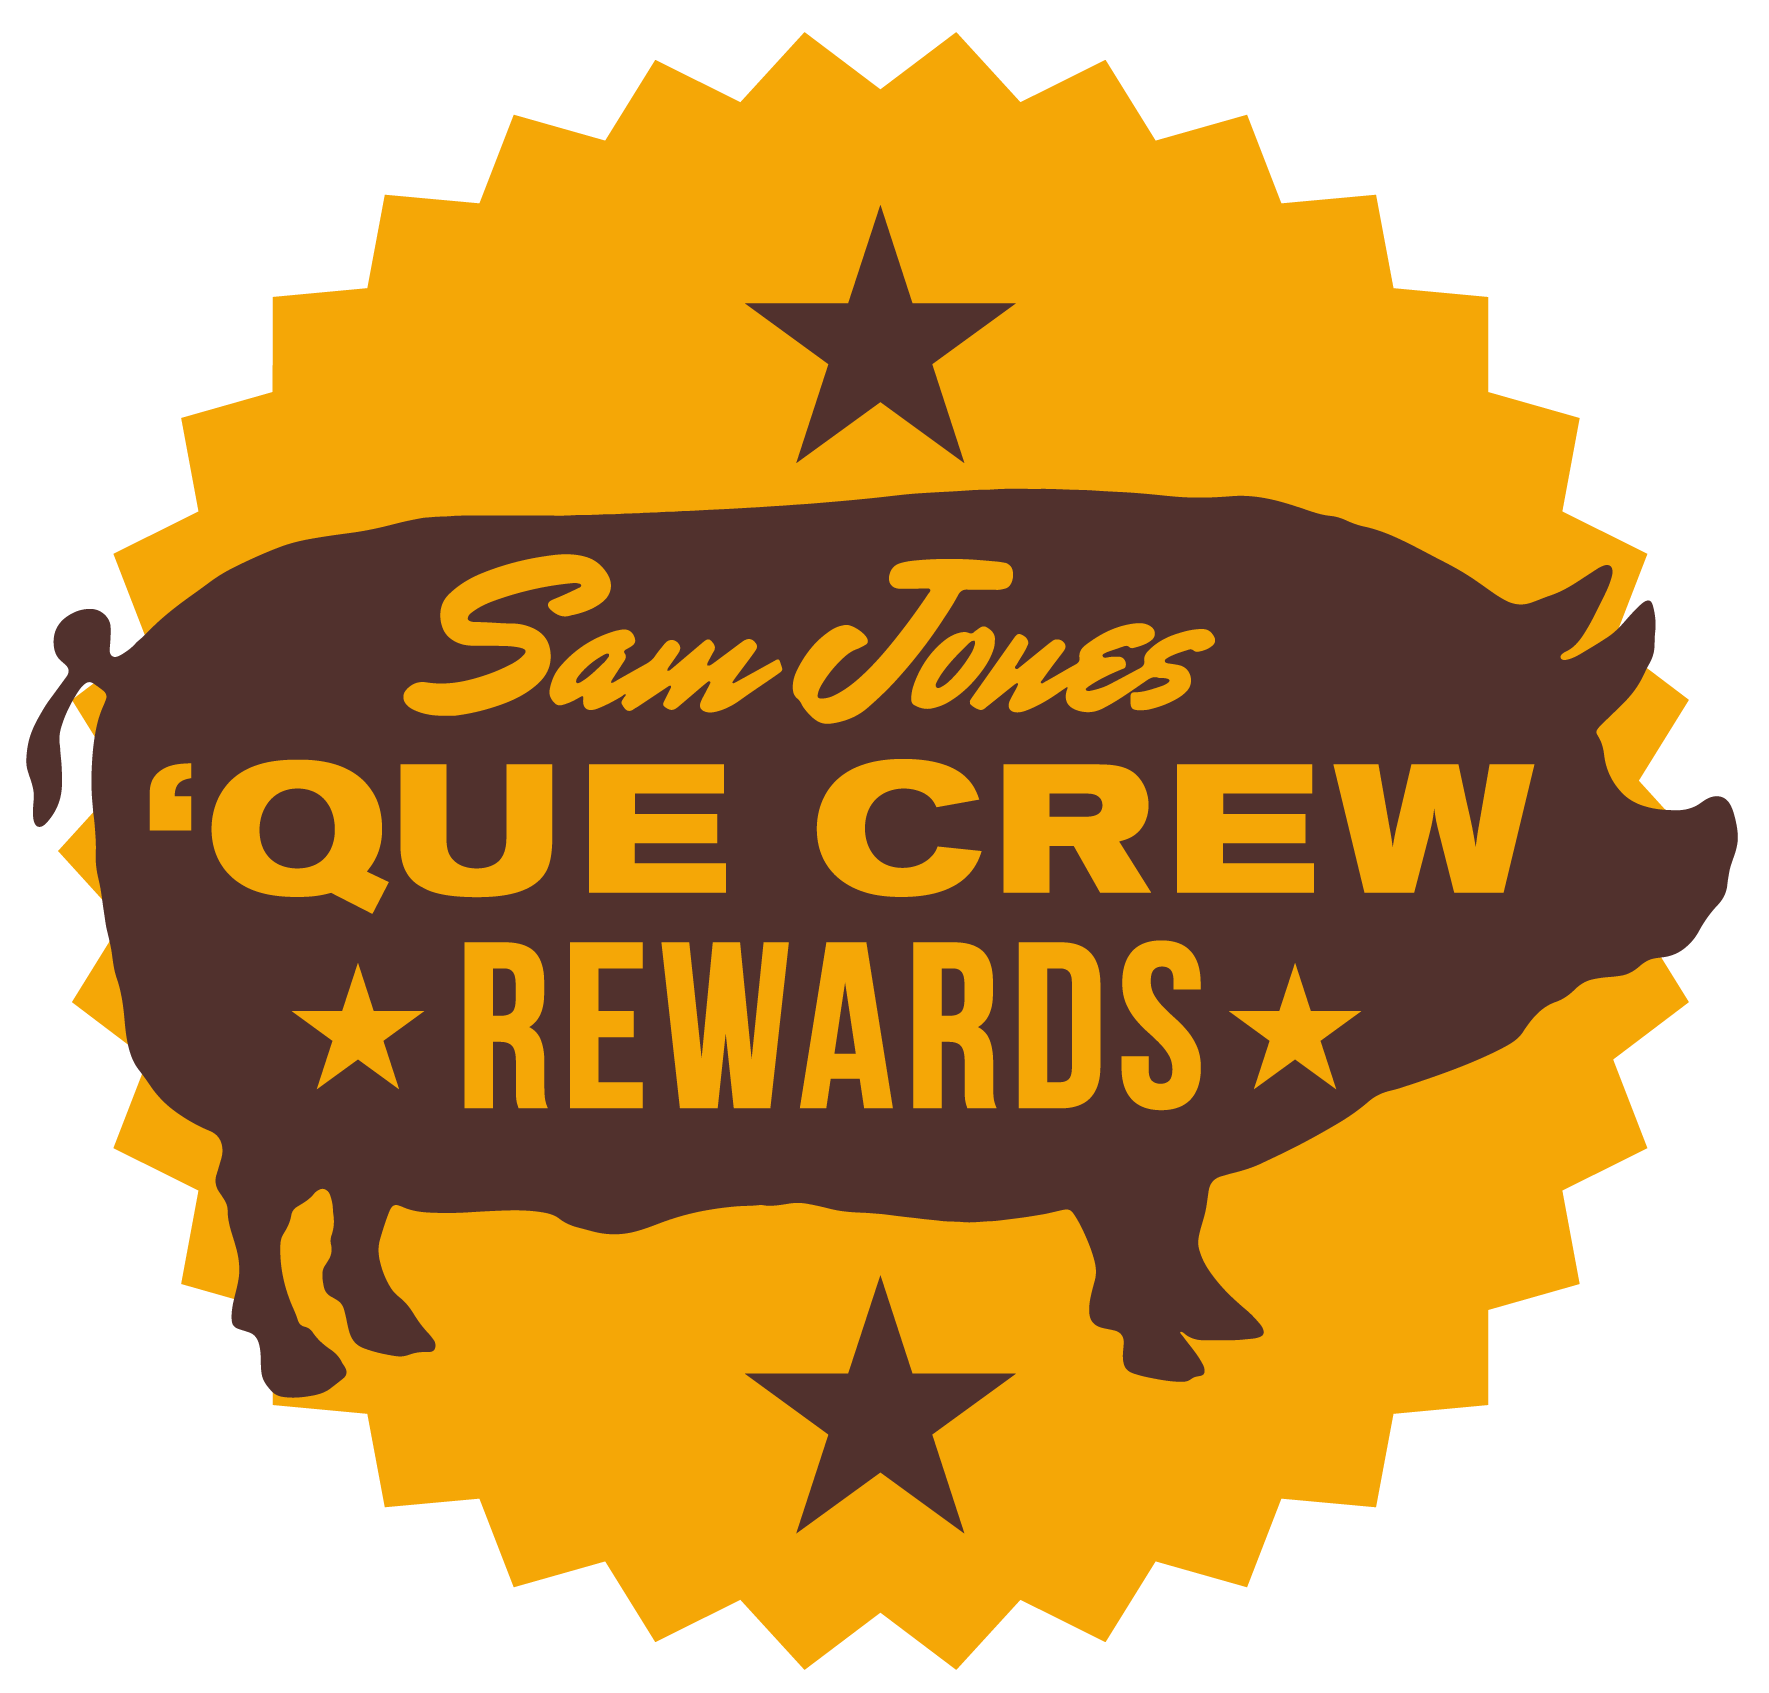 Sam Jones BBQ Que Crew Rewards